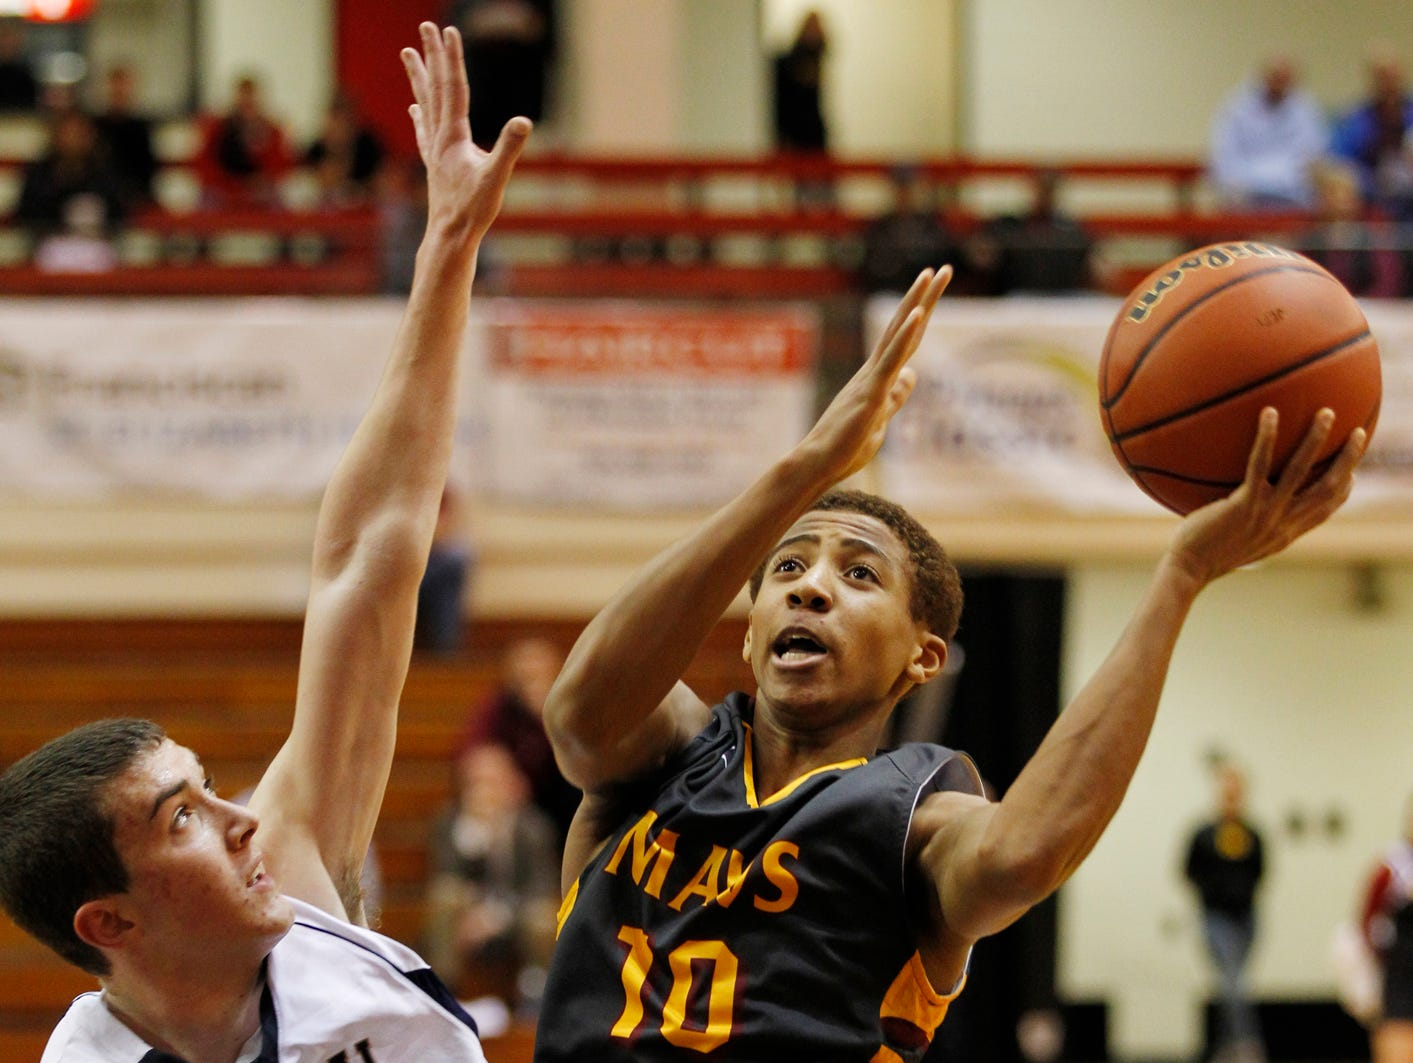 McCutcheon's Robert Phinisee with a shot over Trent Thompson of Central Catholic in the J&C Hoops Classic Tuesday, December 1, 2015, at Lafayette Jeff. McCutcheon won in a landslide 114-44 over Central Catholic.